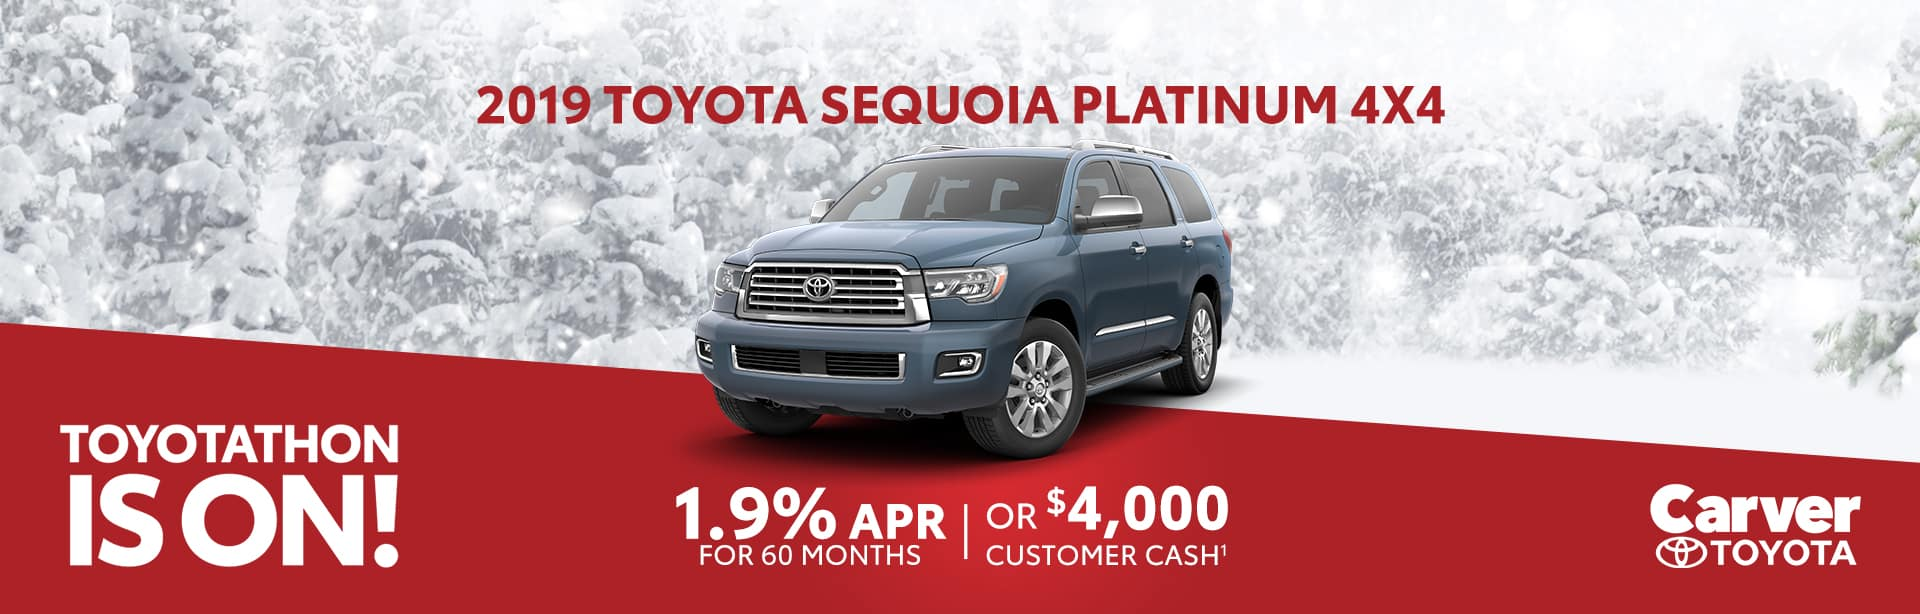 Receive up to $4,000 customer cash on new Toyota Sequoia